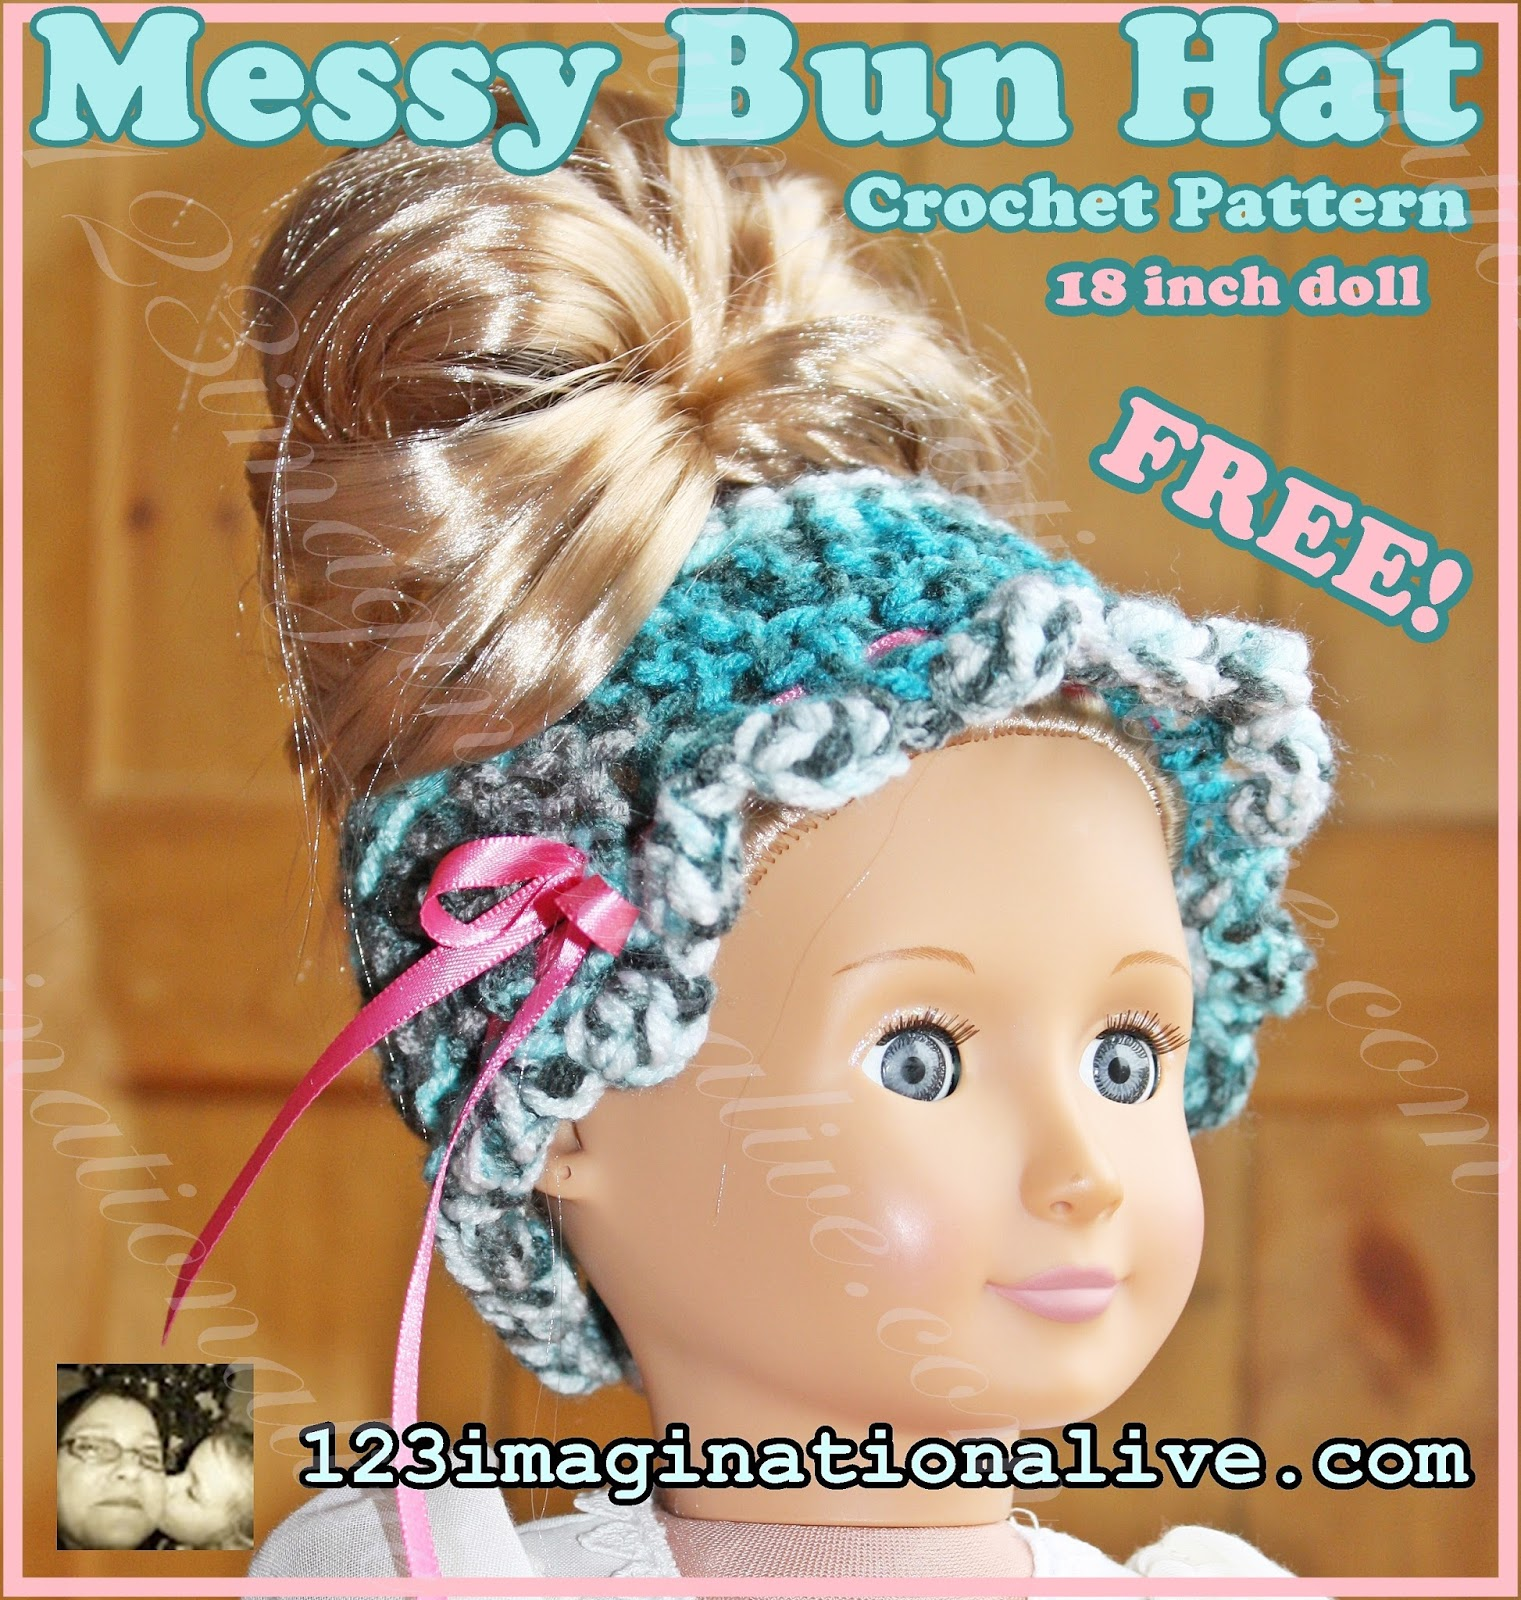 123imaginationalive: Messy Bun Crochet Hat Pattern will fit American ...